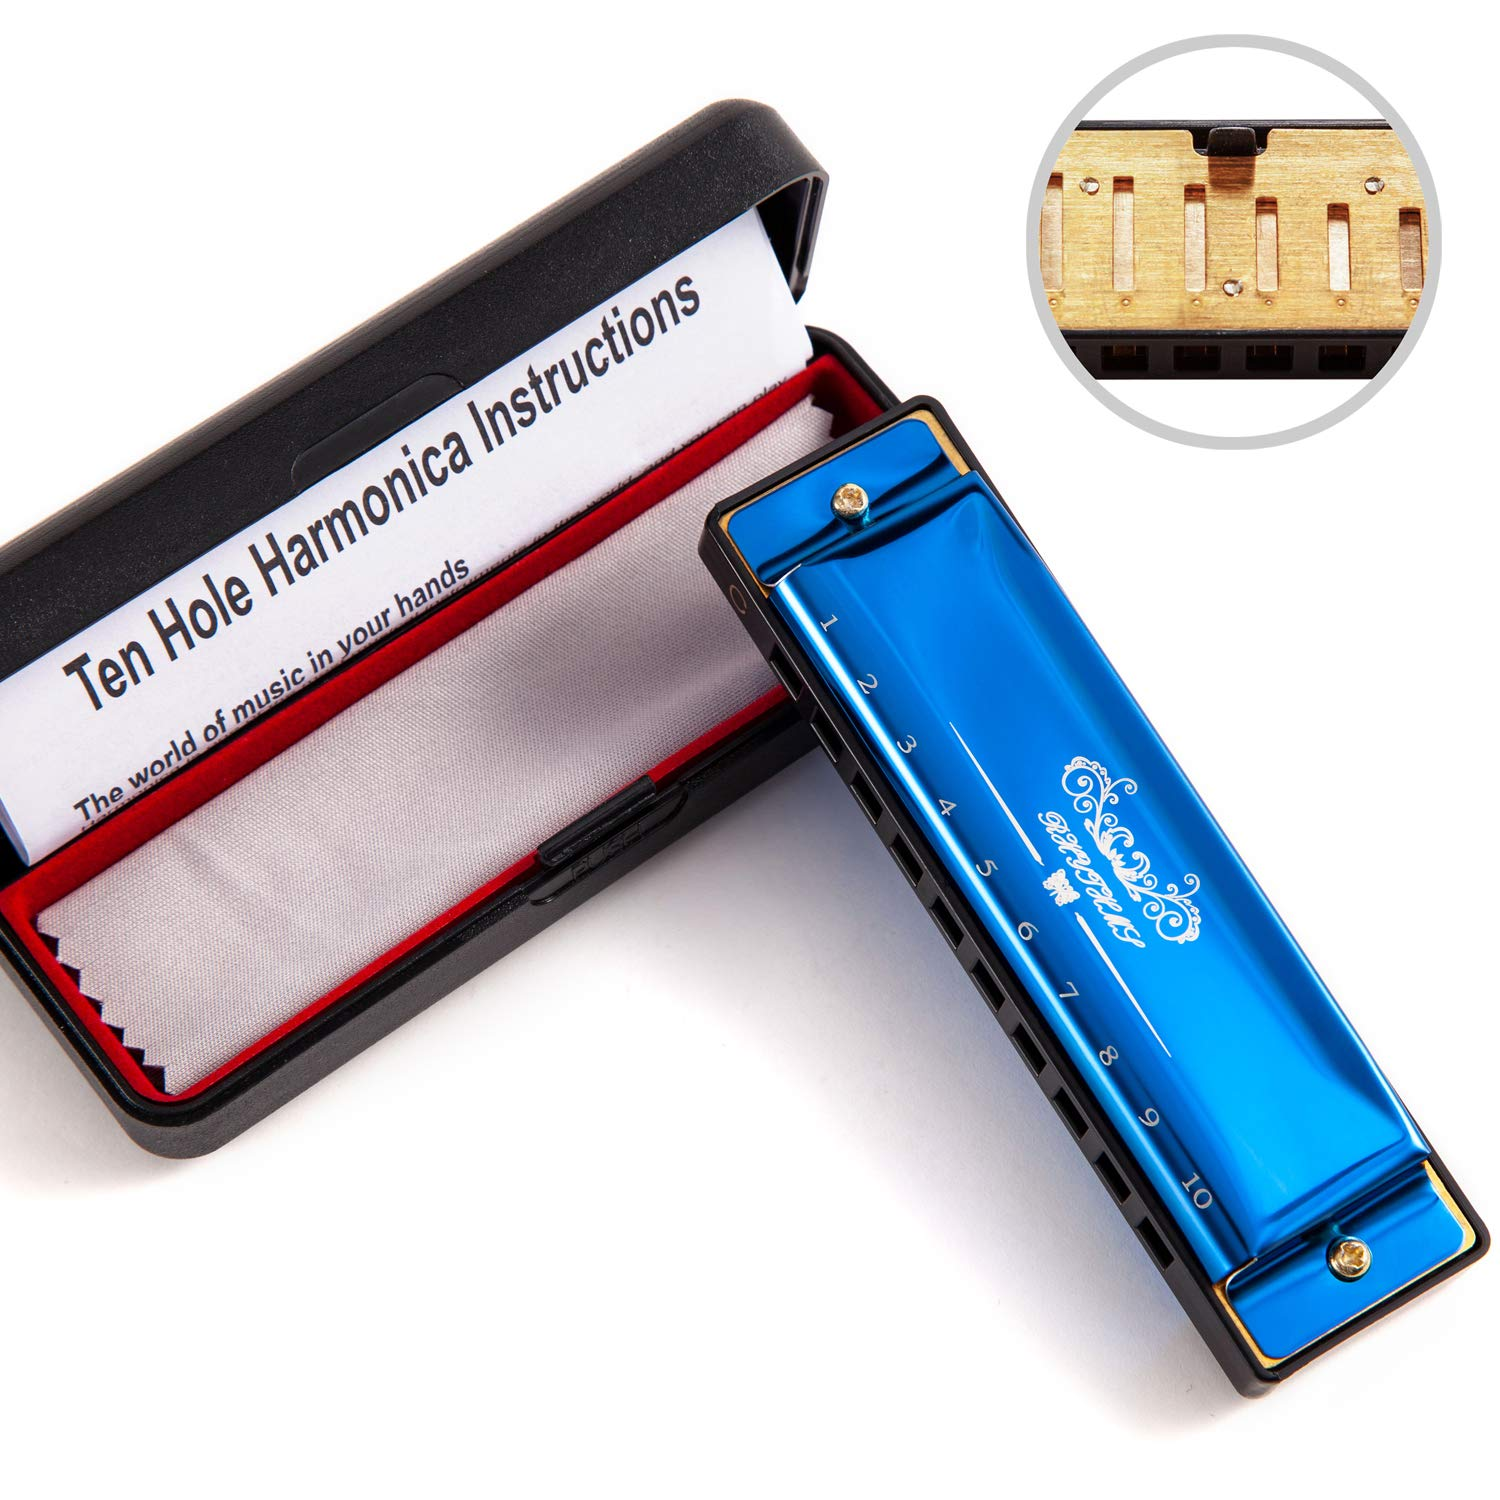 JSL Harmonica, Standard Diatonic Key of C 10 Holes 20 Tones Blues Mouth Organ Harp For Kids, Beginners, Professional, Students (Blues) by jieshiling (Image #2)